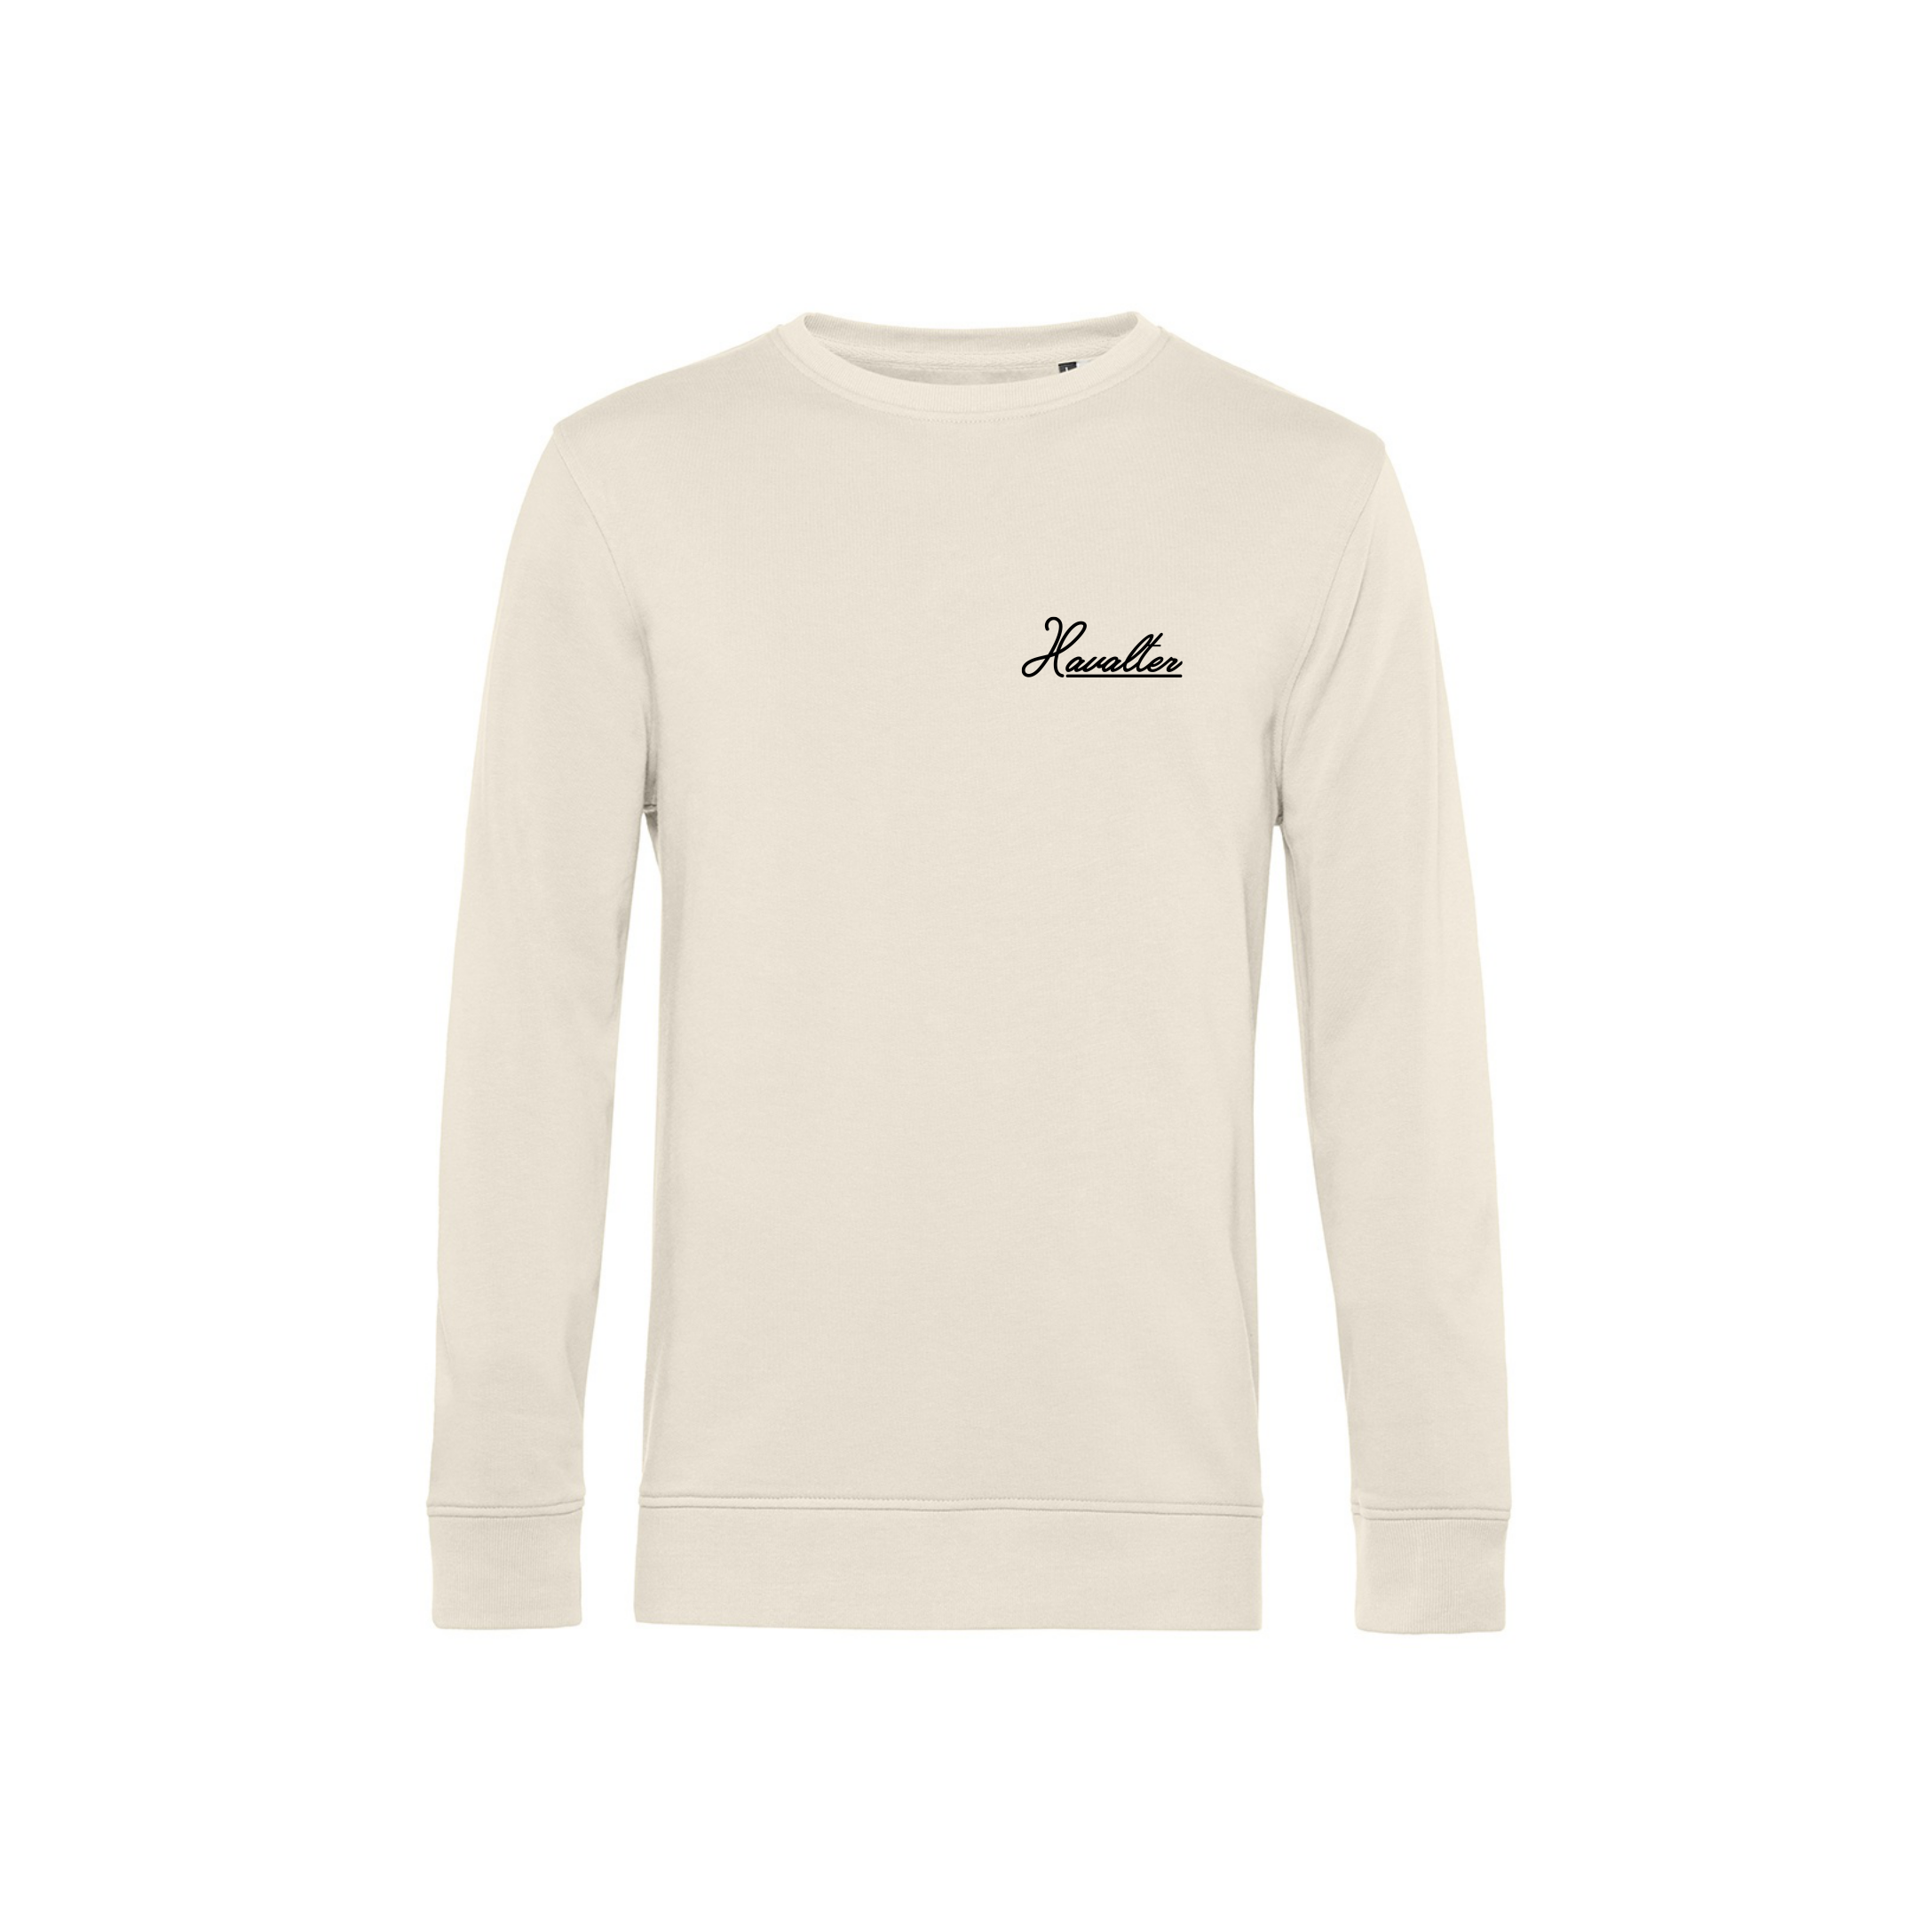 HAVALTER SWEATER CREAM SMALL LOGO, UNISEX